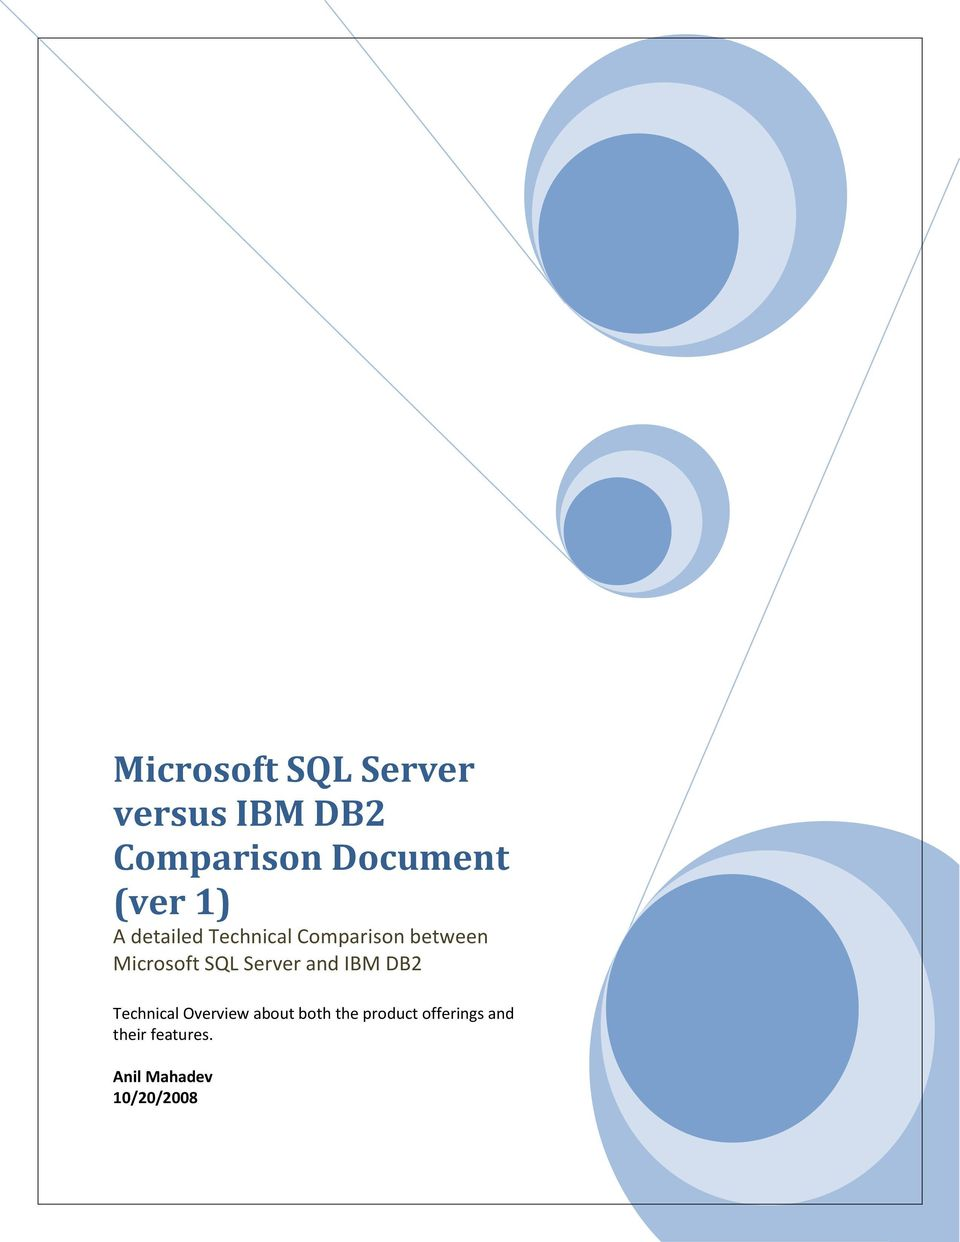 SQL Server and IBM DB2 Technical Overview about both the